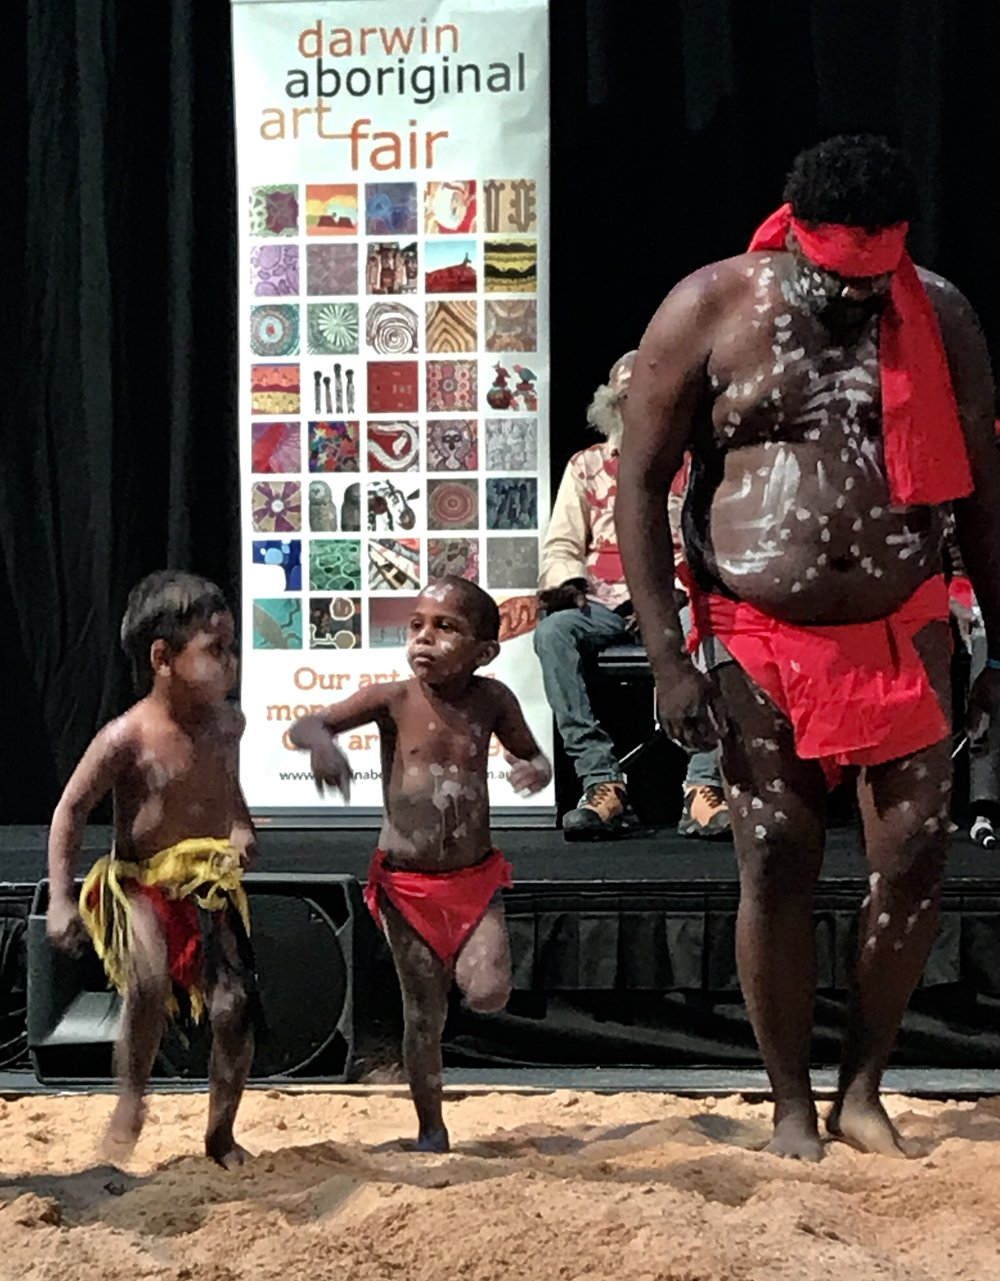 The Warringarri dancers from the Kimberley opened the Fair in style and cuteness